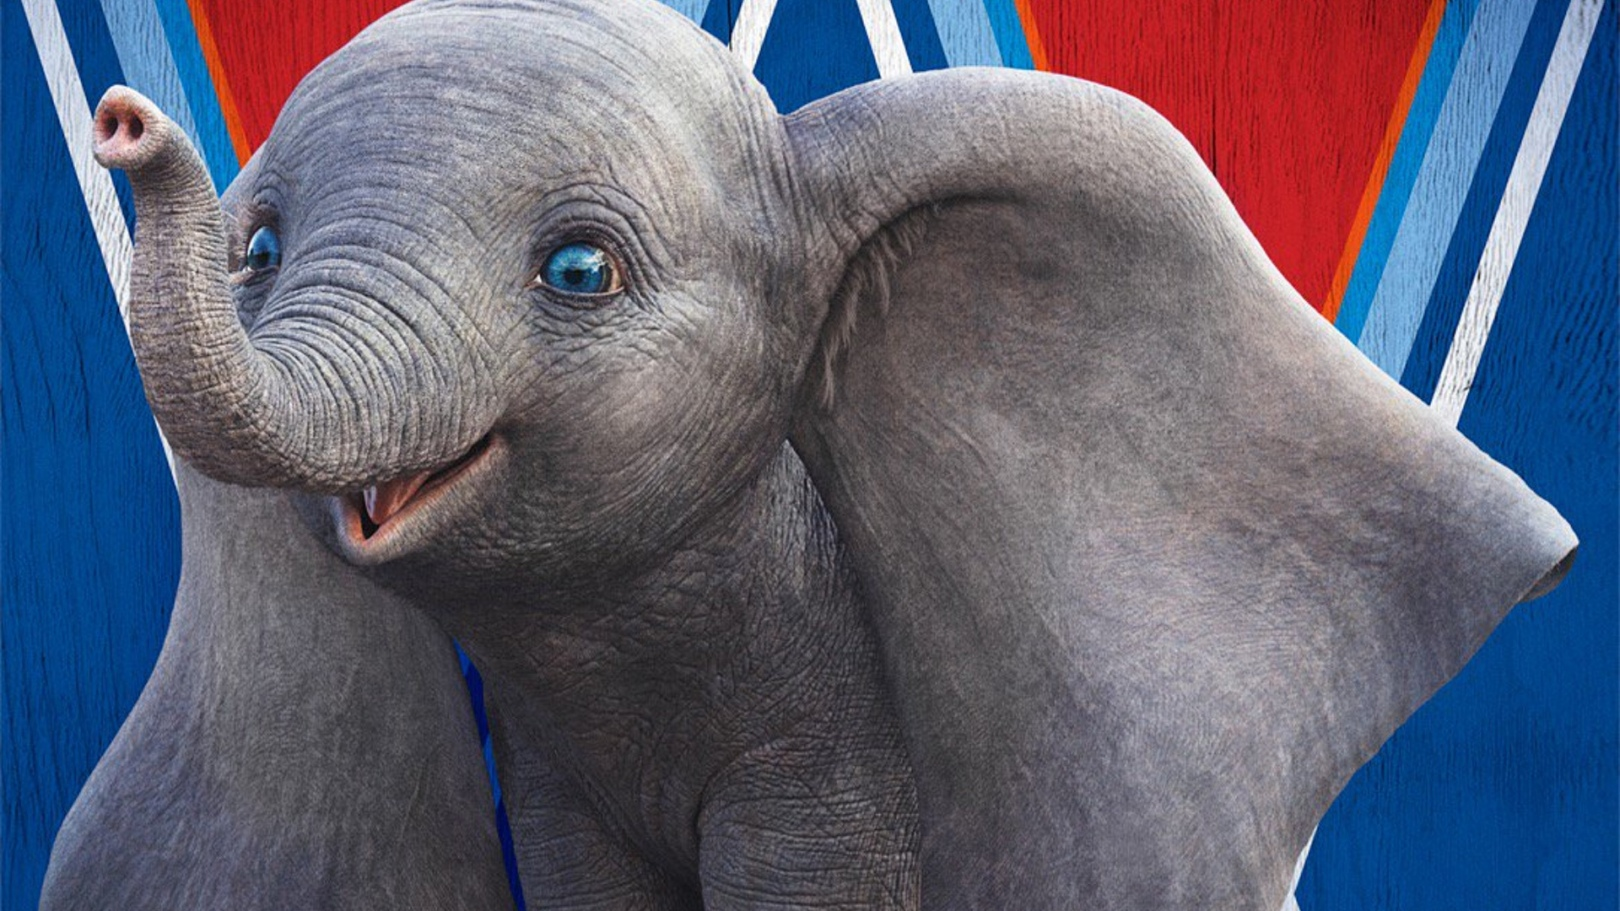 Dumbo | You'll Believe an Elephant Can Fly With Disney's New Trailer